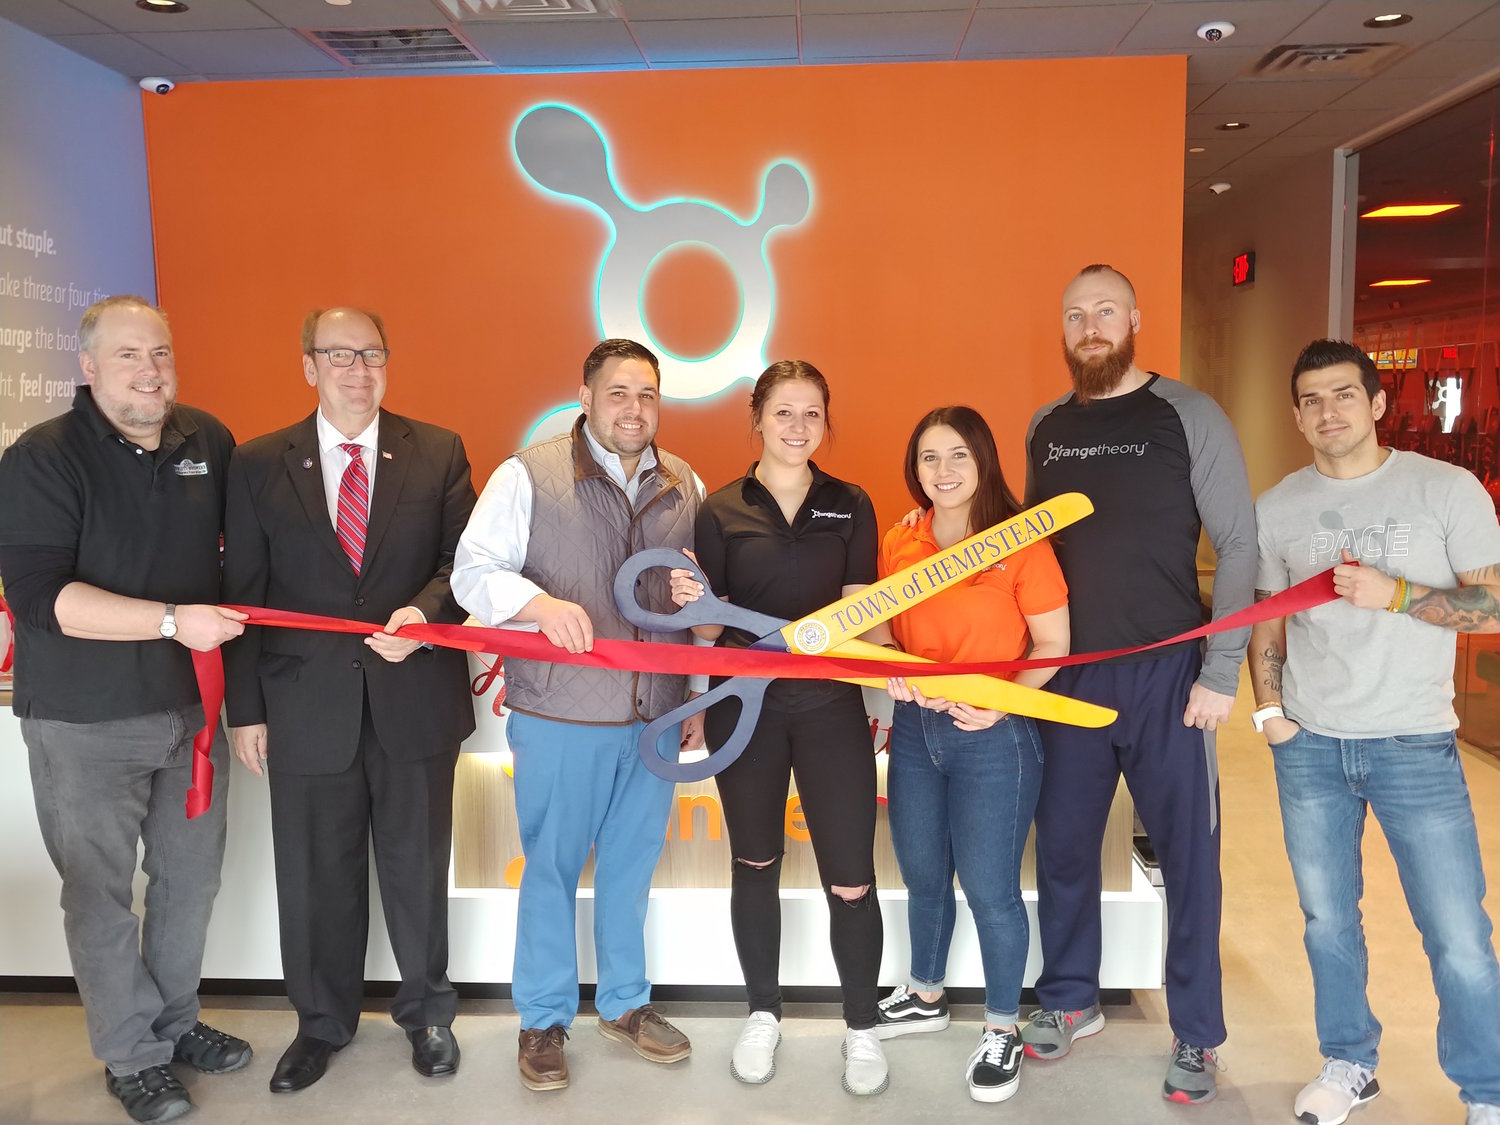 Hewlett welcomed a new business as Orangetheory Fitness opened on Broadway. From left Hewlett-Woodmere Business Association First Vice President John Roblin, HWBA President David Friedman, Councilman Anthony D'Esposito, and center employees Molly Bastow, Rianna Valinoti, RJ Cincotta and Nick Locicero.